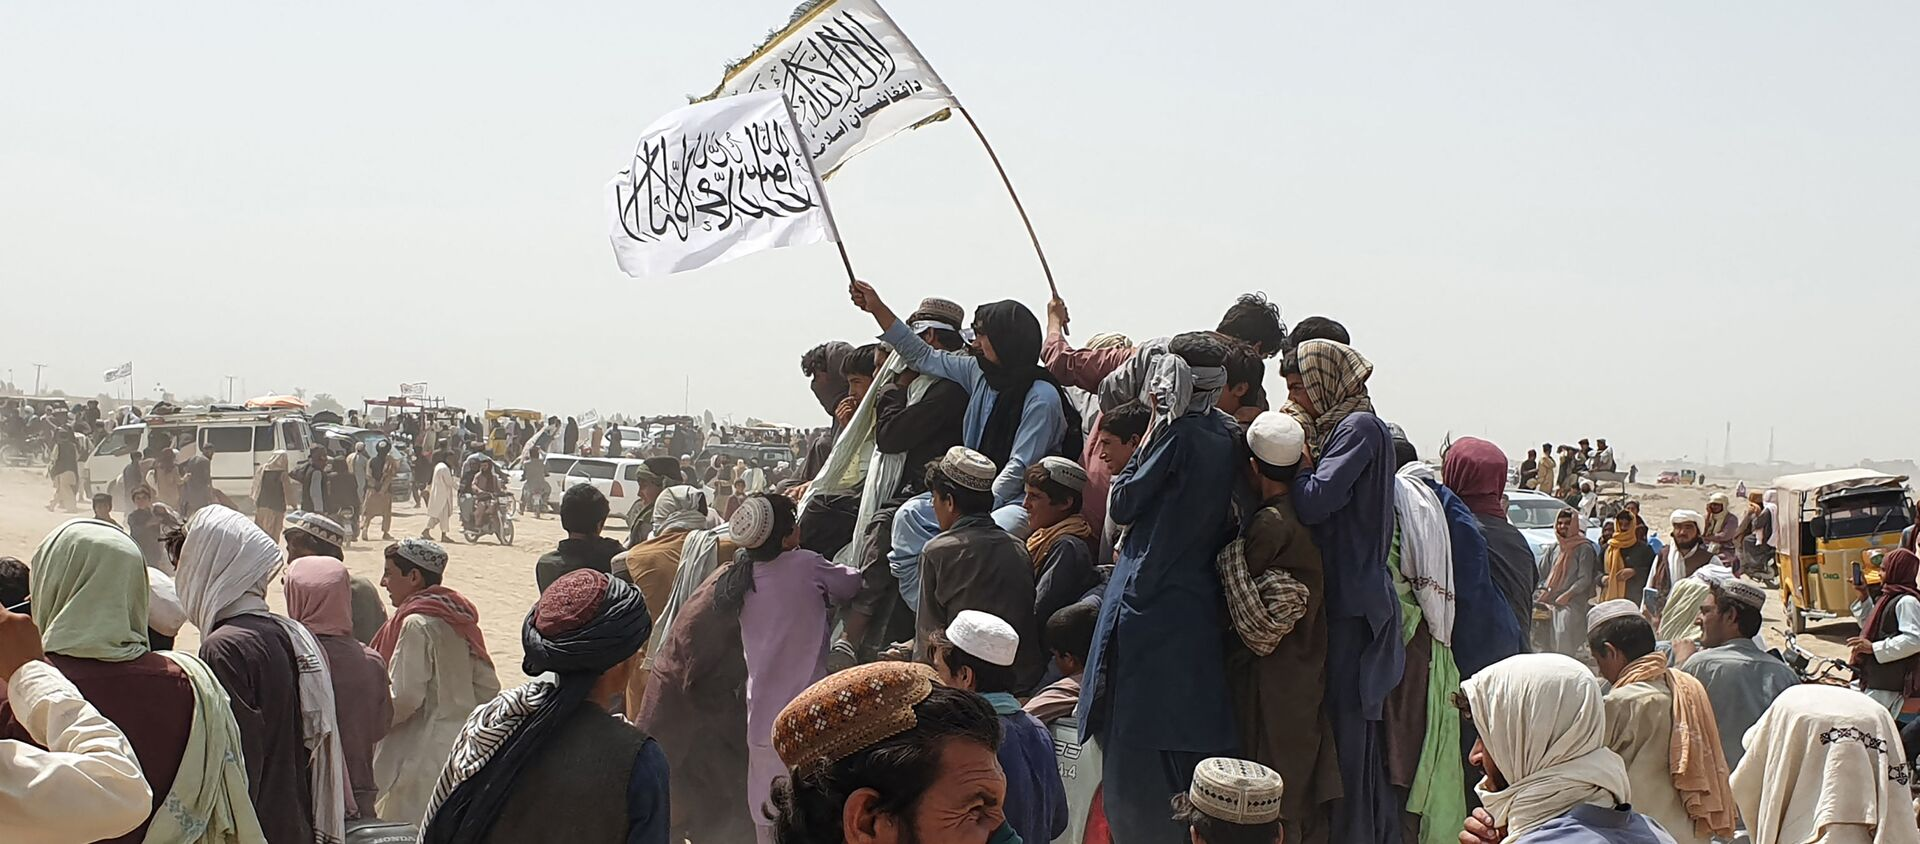 People wave Taliban flags as they drive through the Pakistani border town of Chaman on July 14, 2021, after the Taliban claimed they had captured the Afghan side of the border crossing of Spin Boldak along the frontier with Pakistan - Sputnik International, 1920, 23.07.2021